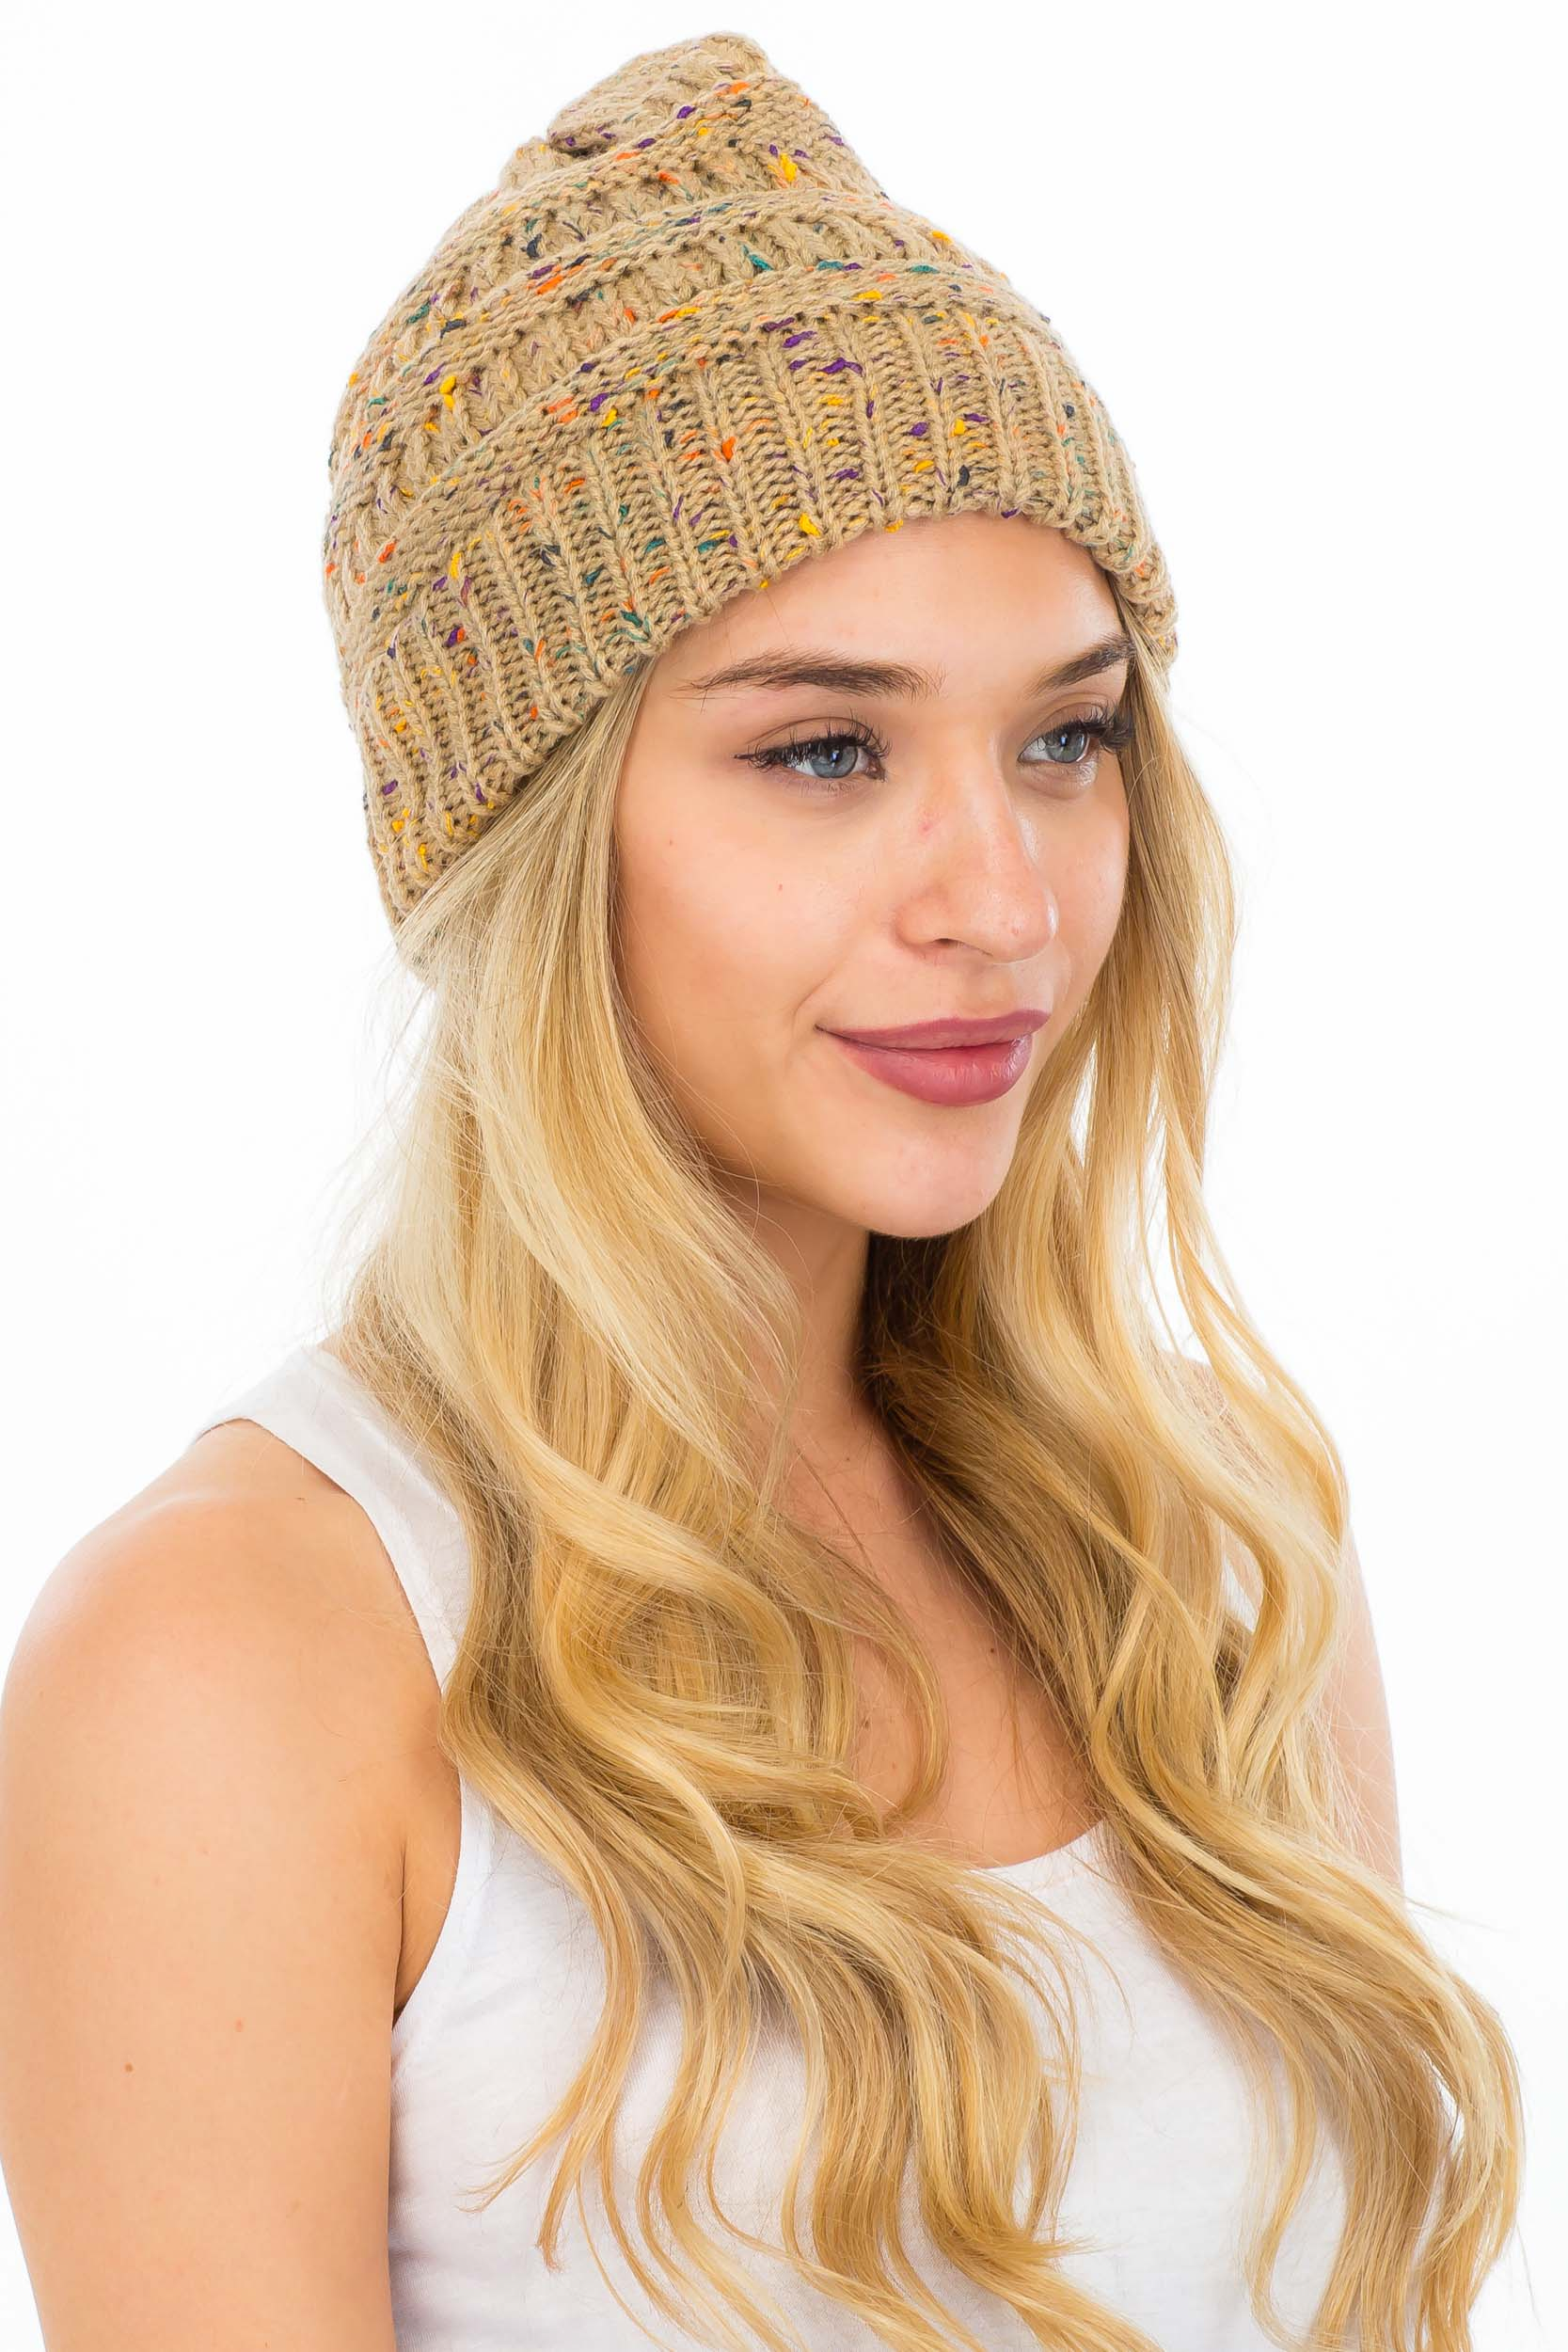 Thick Multi Colored Thread Knit Beanie with a Hole for Ponytail